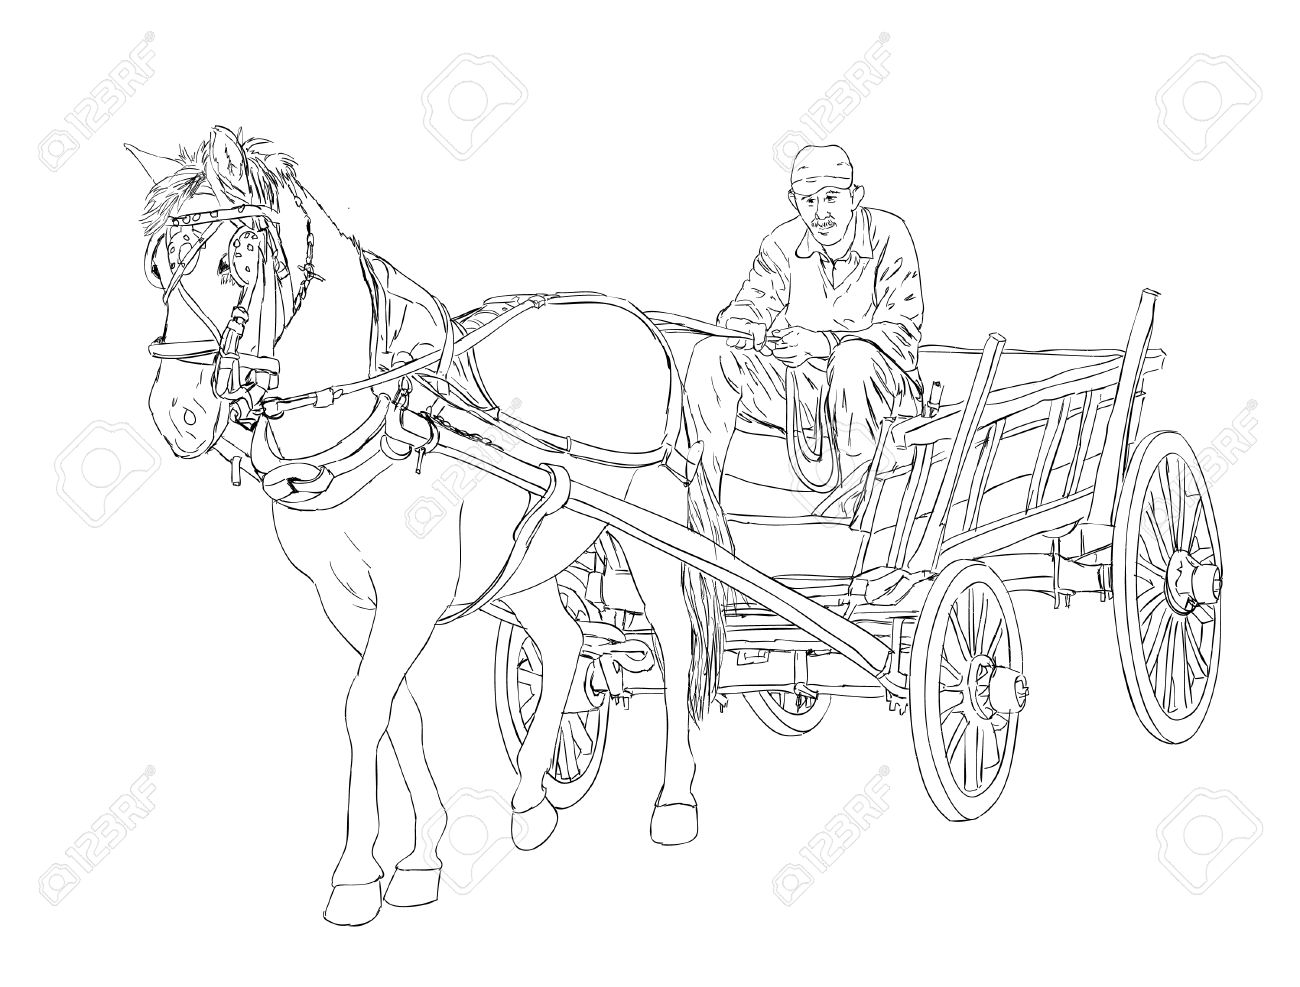 1300x987 Horse Cart Sketch Royalty Free Cliparts, Vectors, And Stock